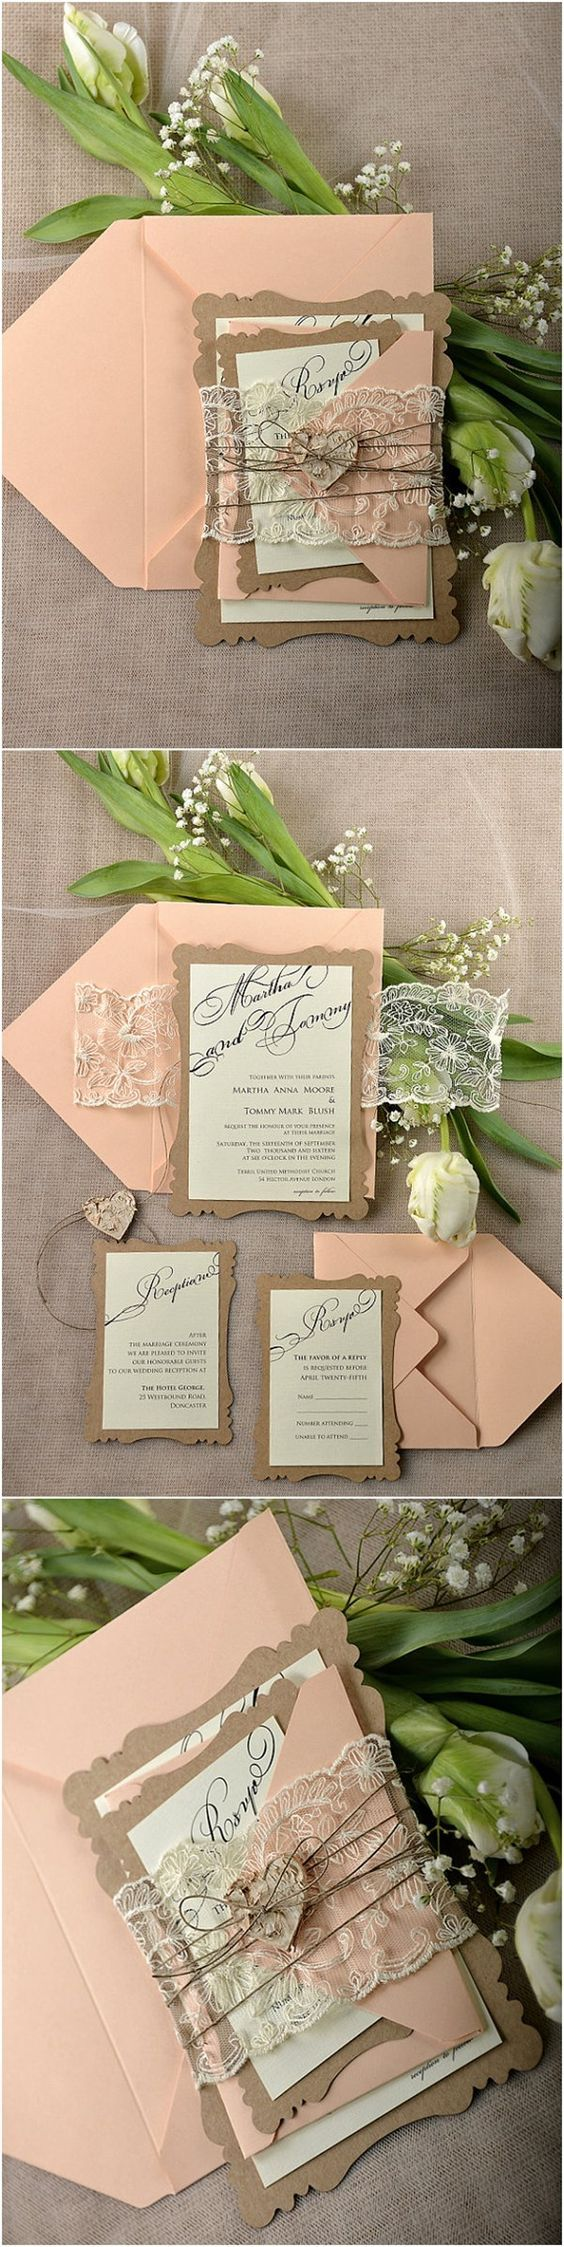 wedding invitation diy kits uk%0A Rustic Eco Peach Lace Laser Cut Wedding Invitation Kits